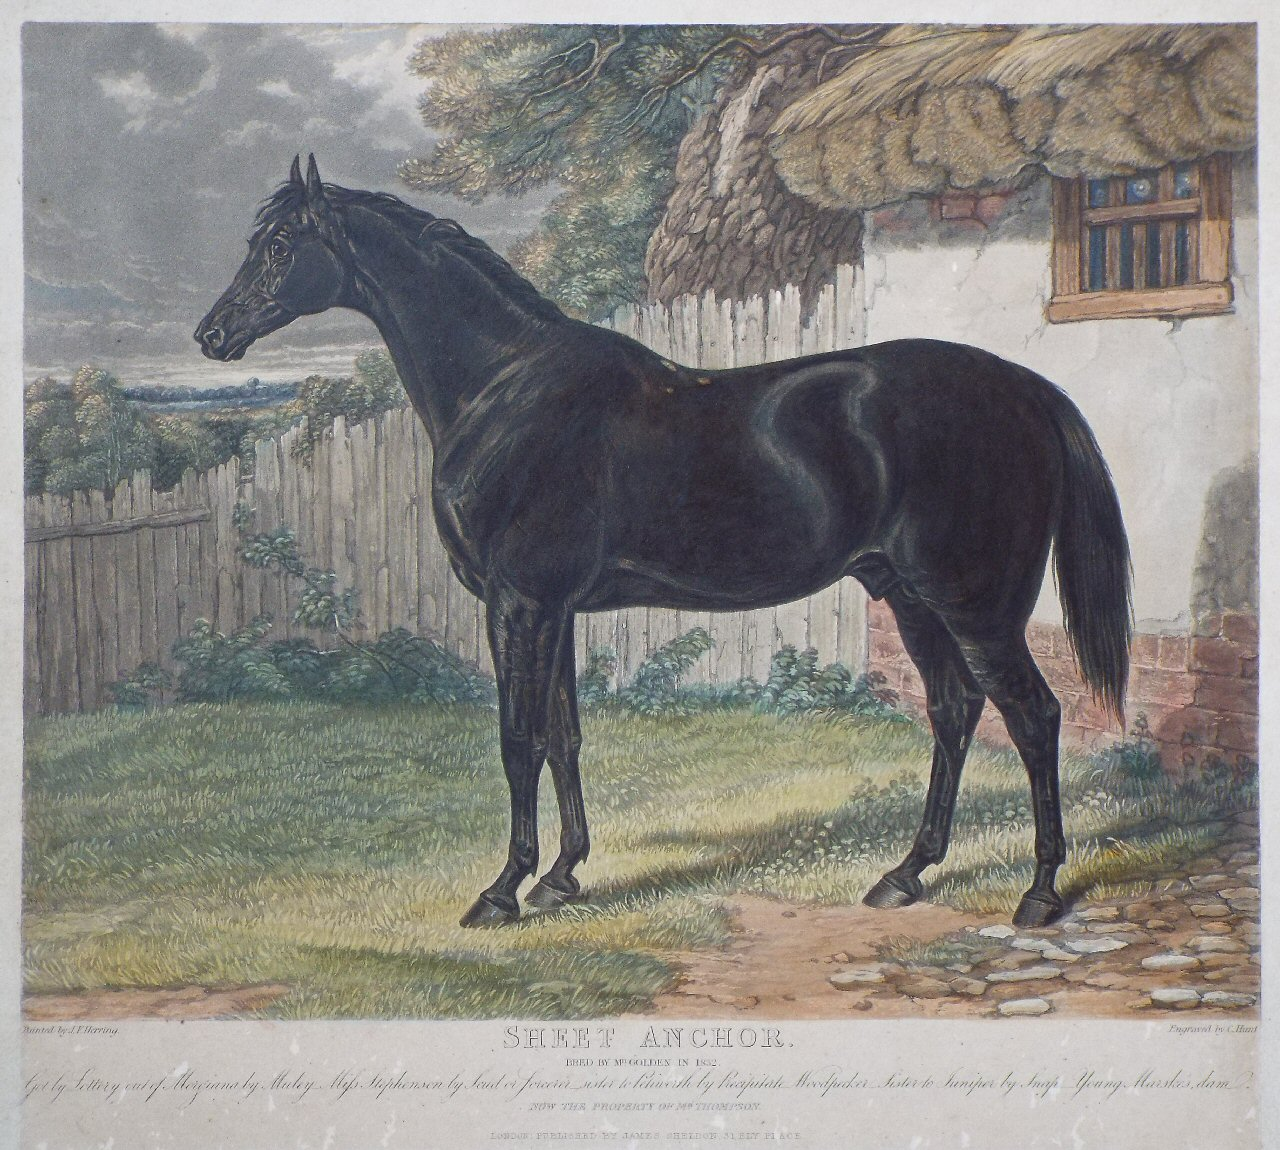 Aquatint - Sheet Anchor. Bred by Mr. Golden in 1832. - Hunt